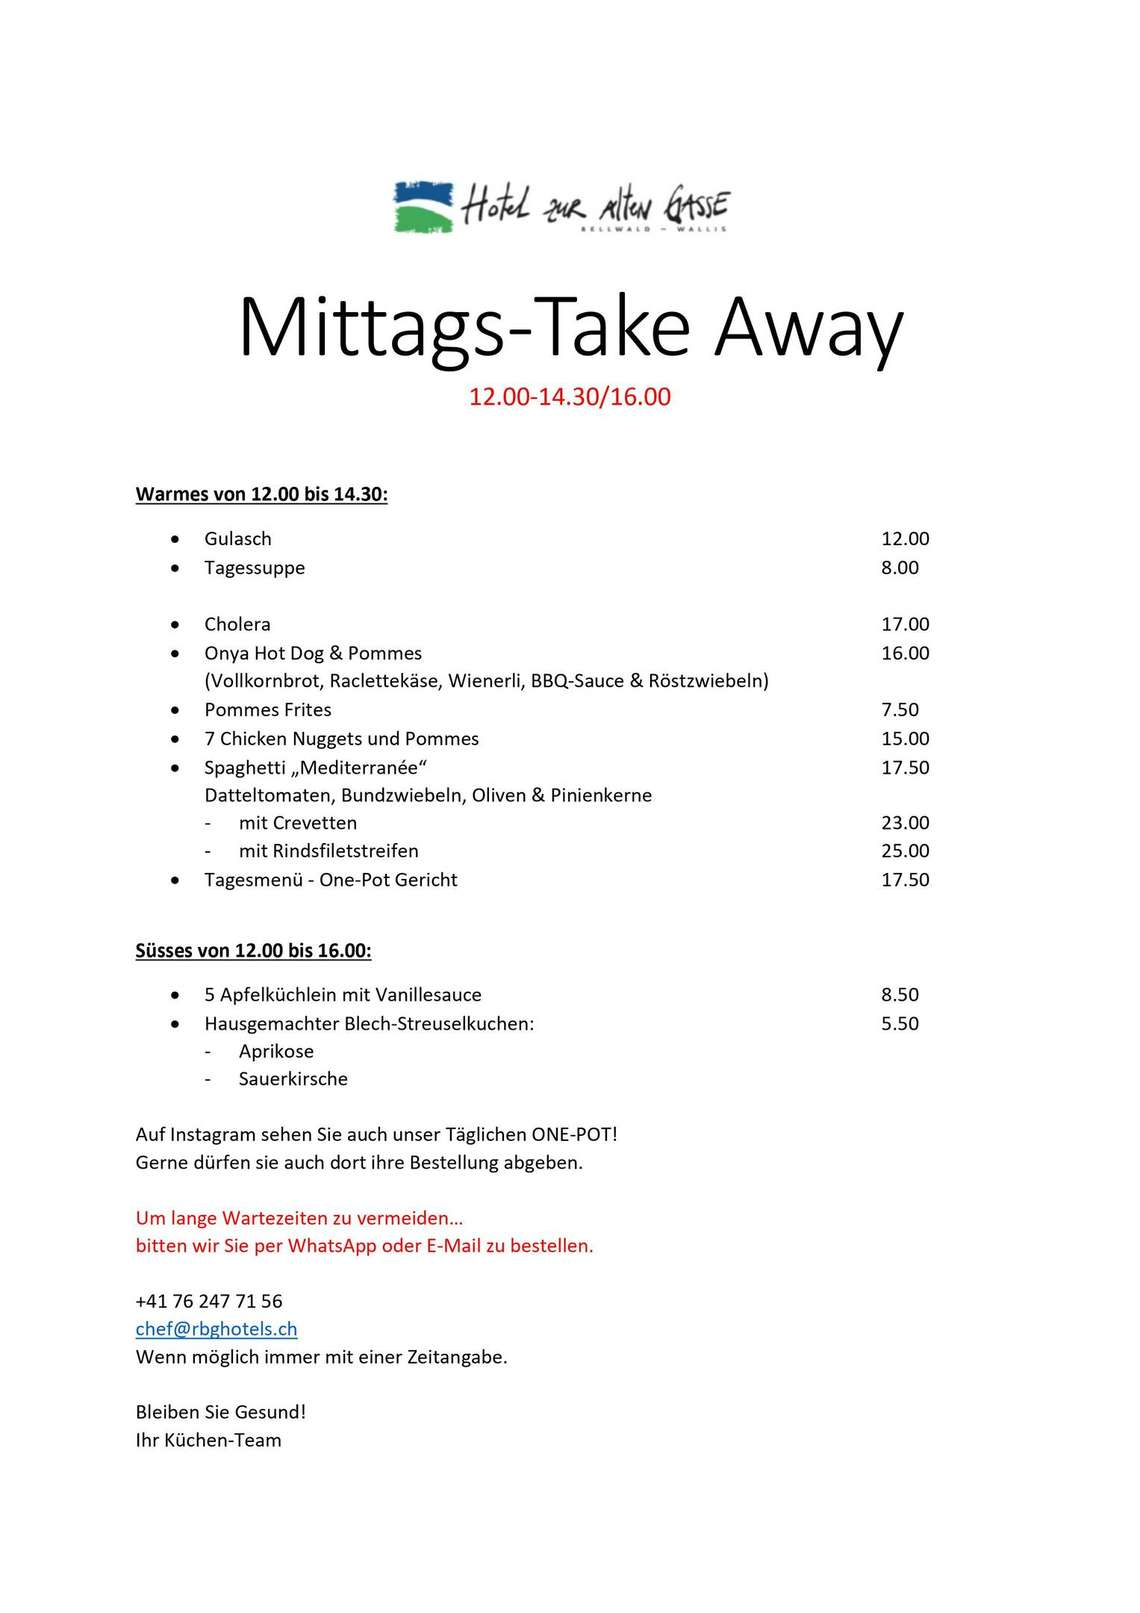 Zur alten Gasse Take Away mittags